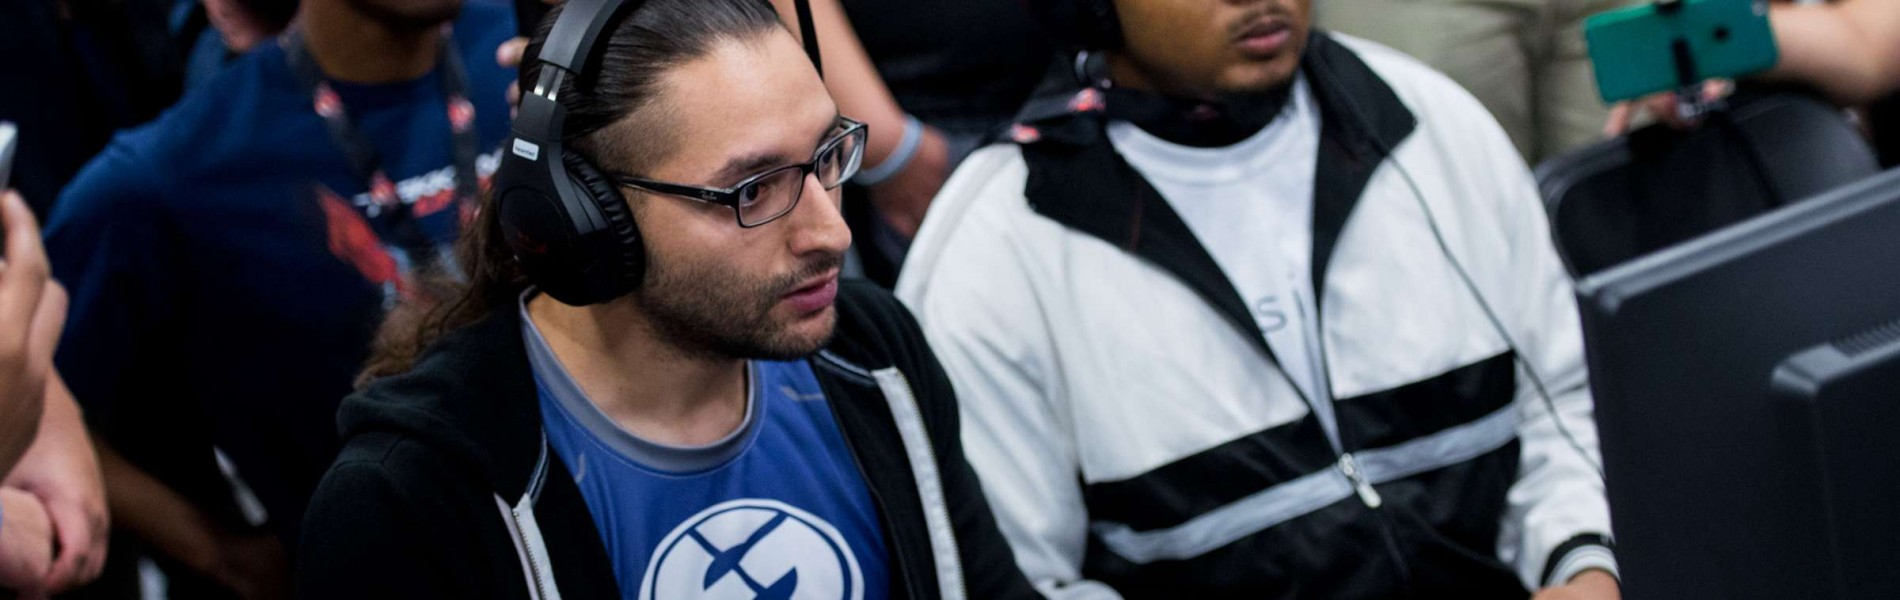 Photos of the Evil Geniuses Fighting Games players at EVO 2017 in Las Vegas, Nevada